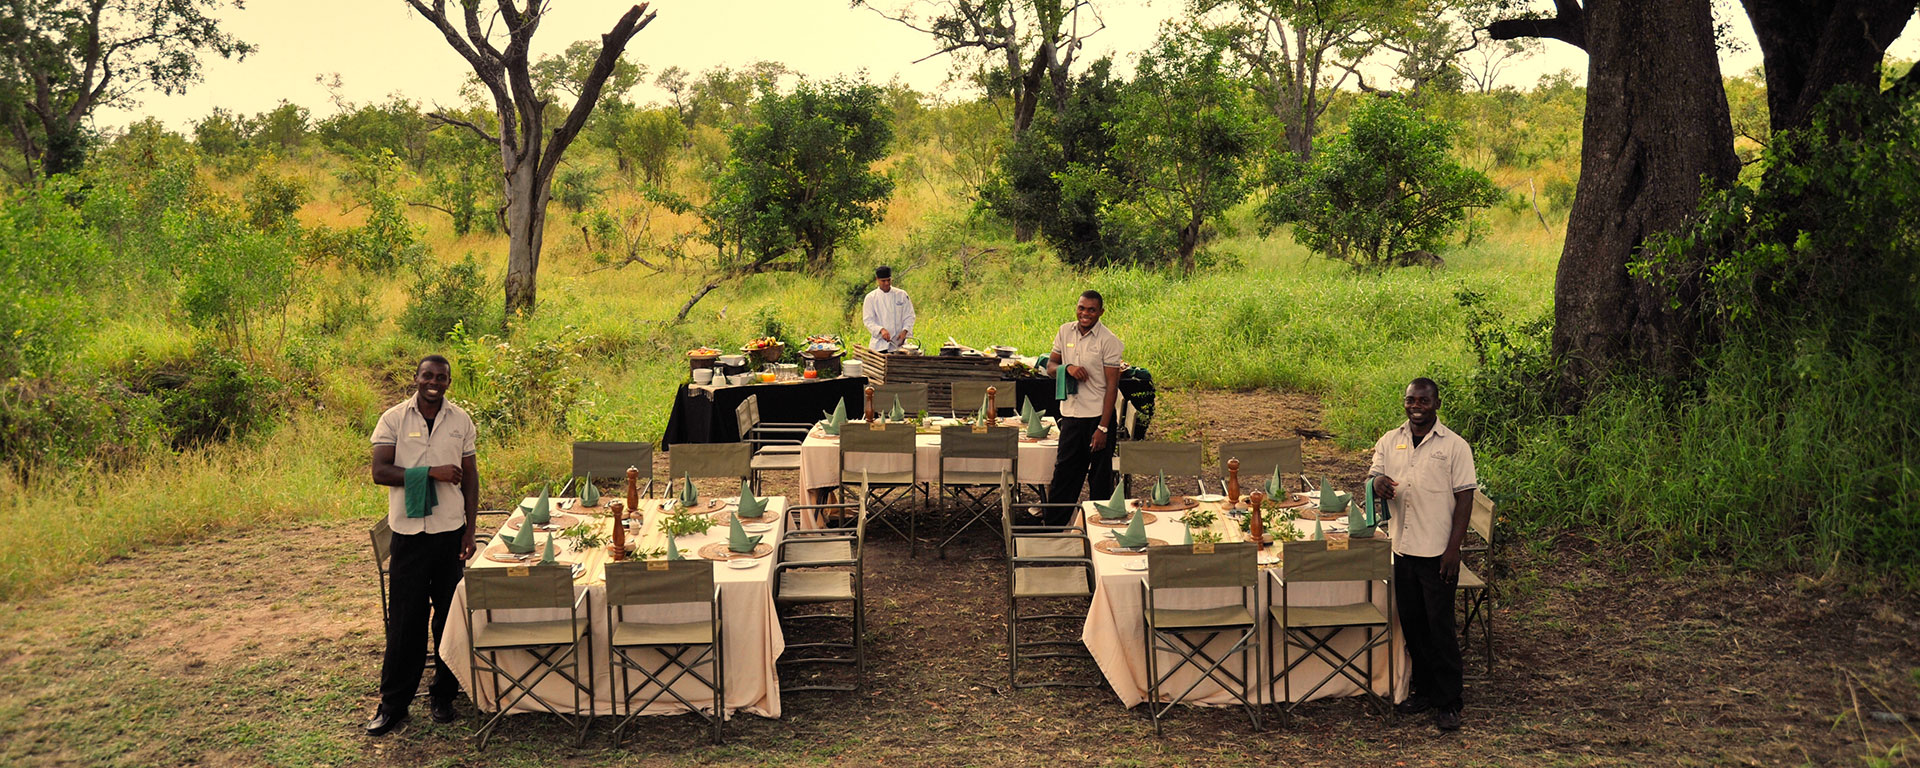 After a thrilling game drive, the staff at Savanna will be waiting to serve you in a gorgeous clearing.